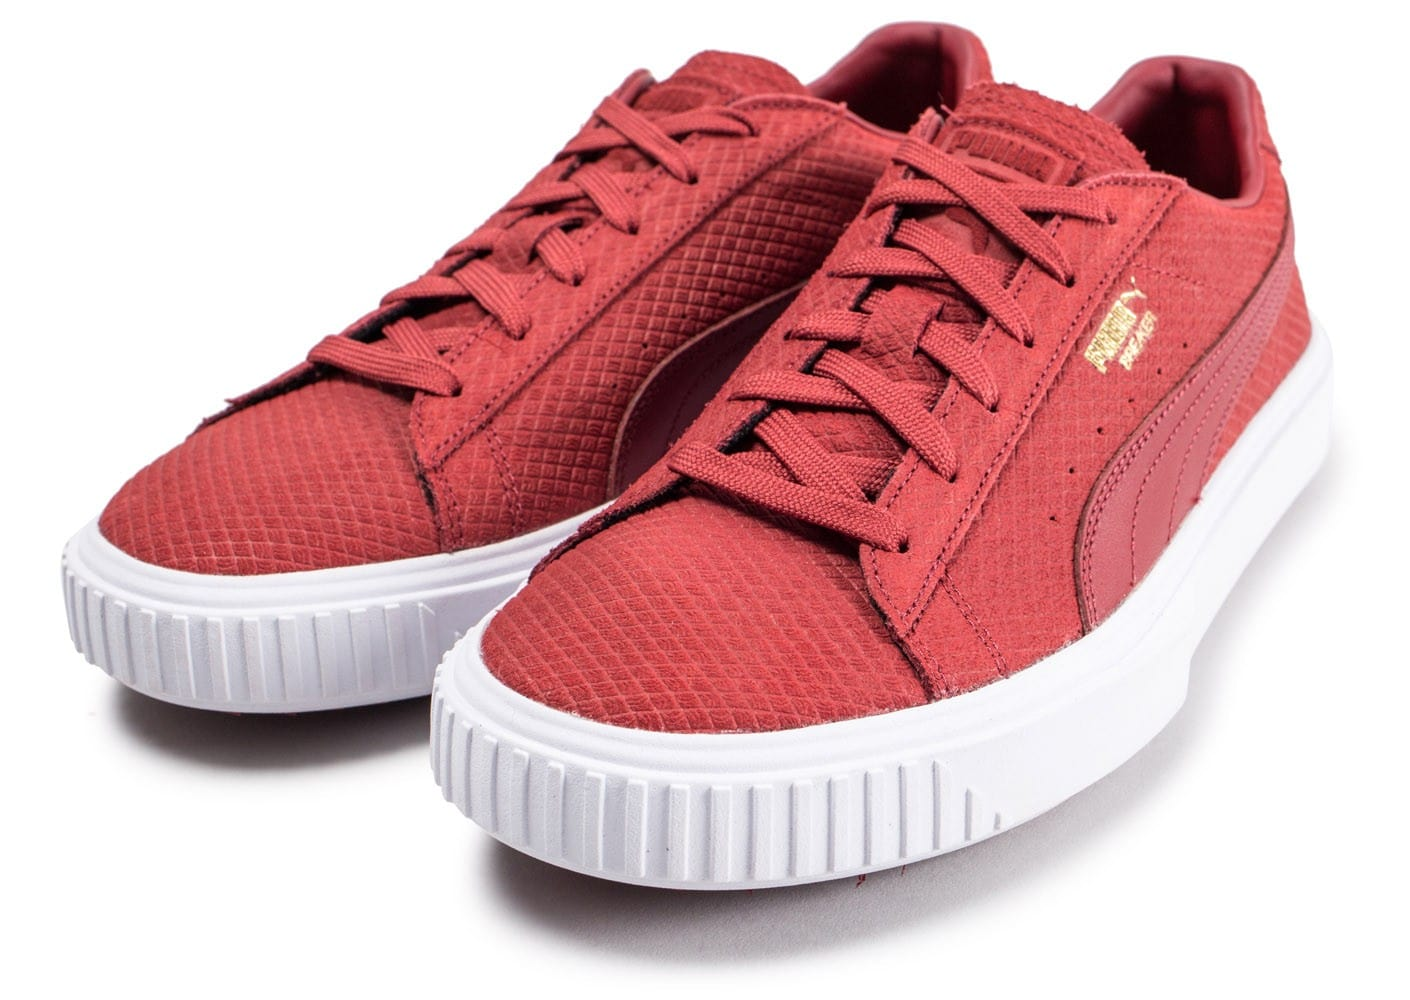 puma rouge chaussure homme